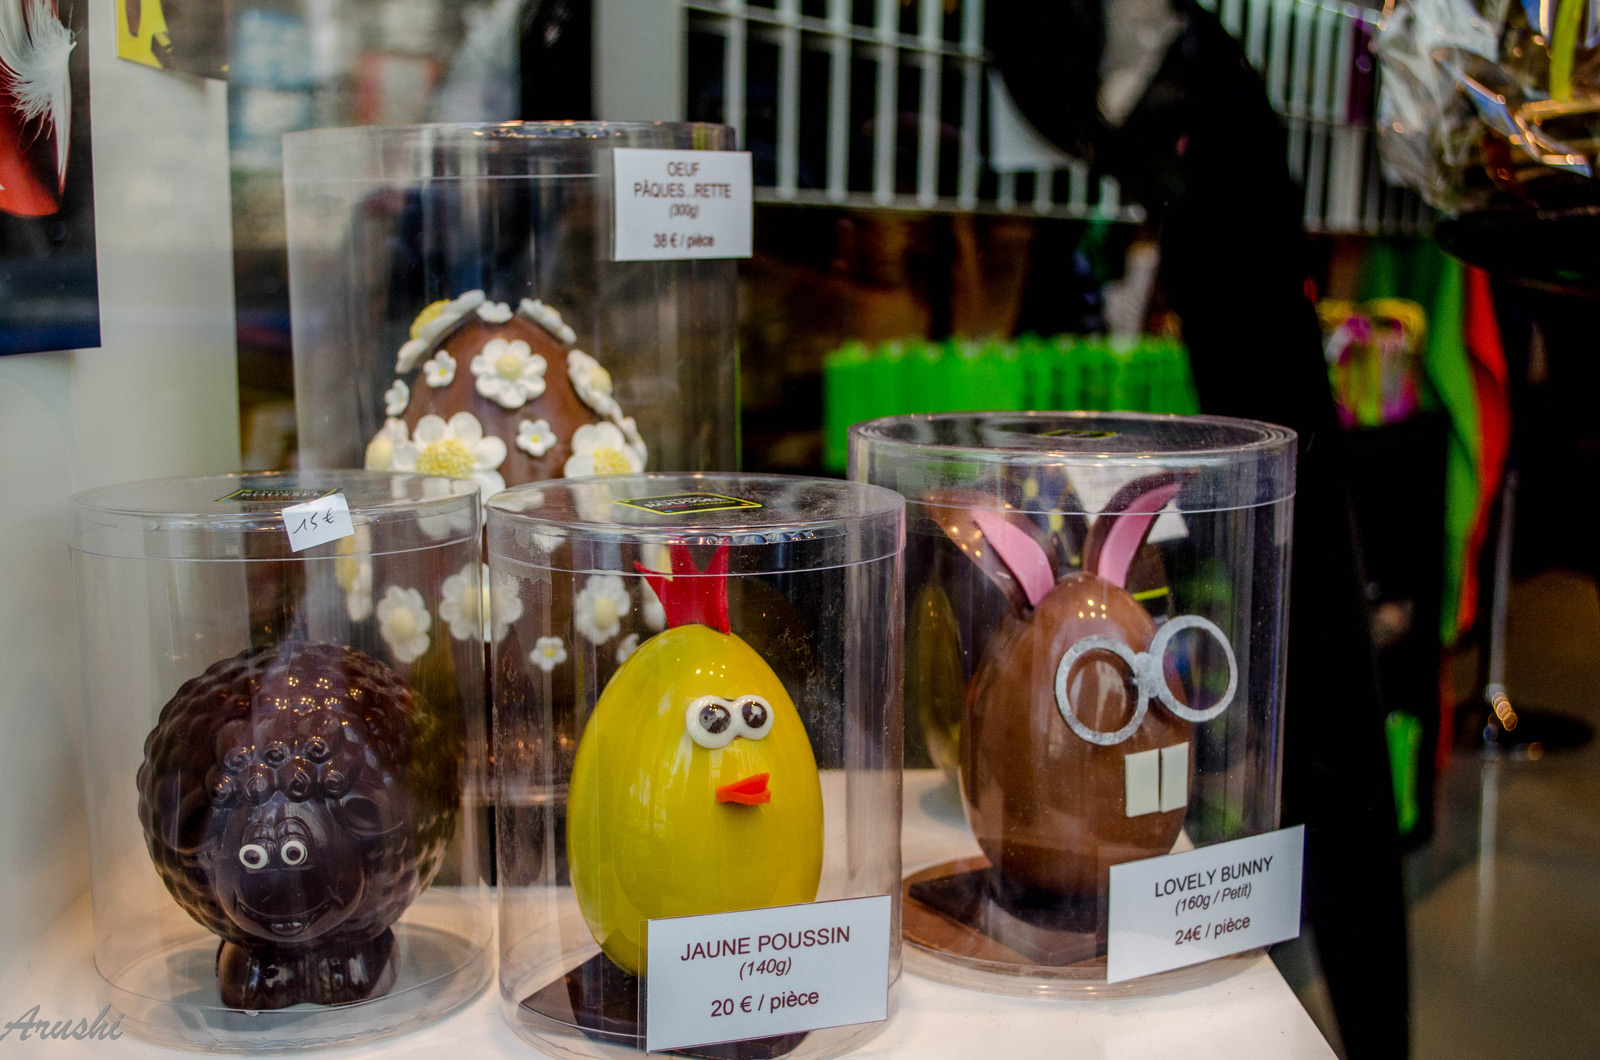 In Paris, the Easter chocolate eggs and sheep, were placed in transparent boxes for a better protection and for a better look at the window display.